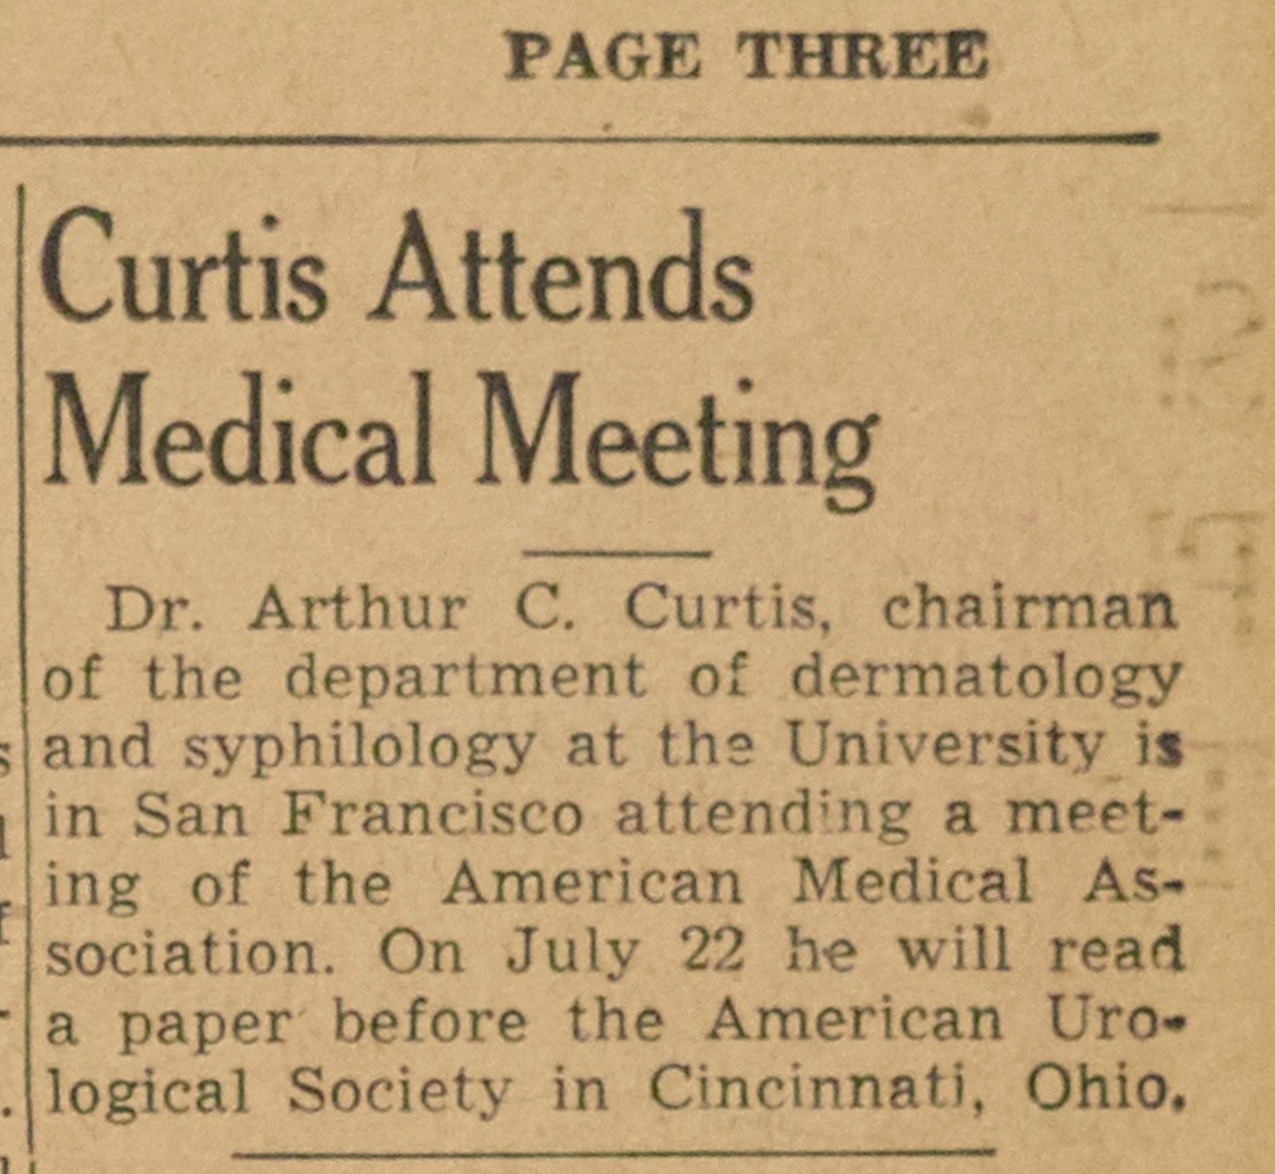 Curtis Attends Medical Meeting image